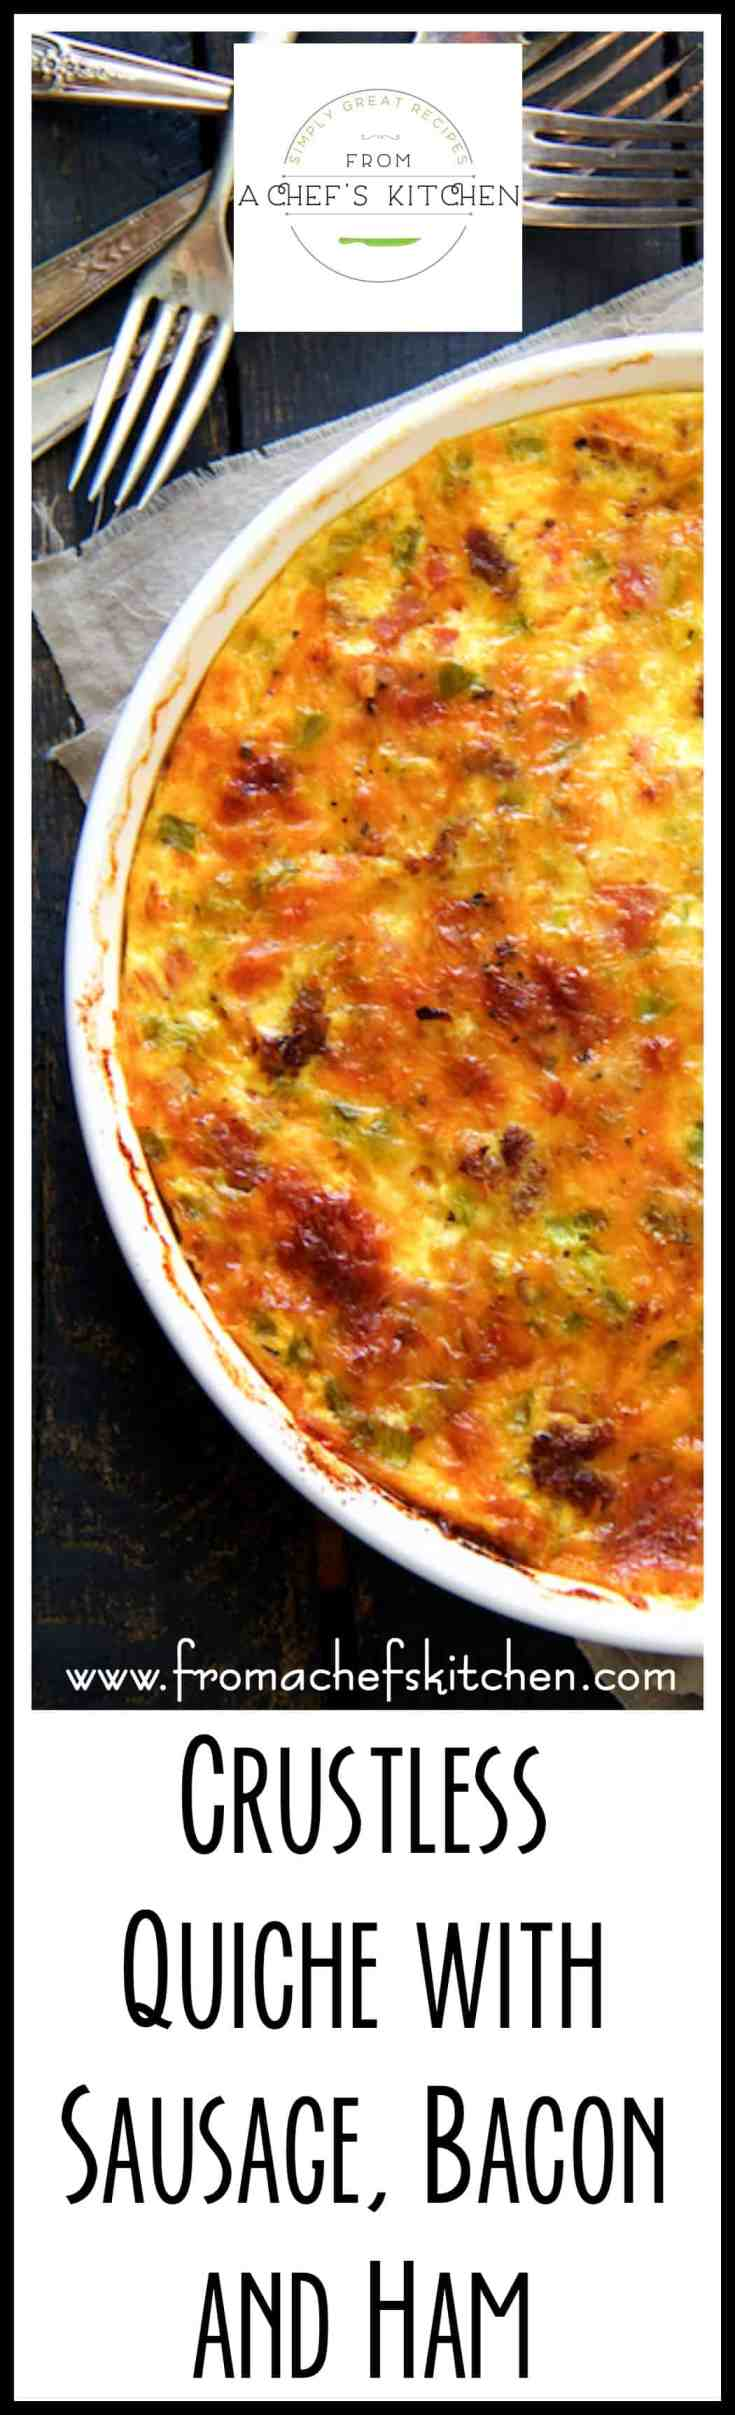 Crustless Quiche with Sausage, Bacon and Ham is ideal for low-carb, keto or gluten-free diets. Best of all, going crustless is simply easier than fussing with a crust! #crustlessquiche #quiche #breakfast #brunch #lowcarb #keto #glutenfree #sausage #bacon #ham